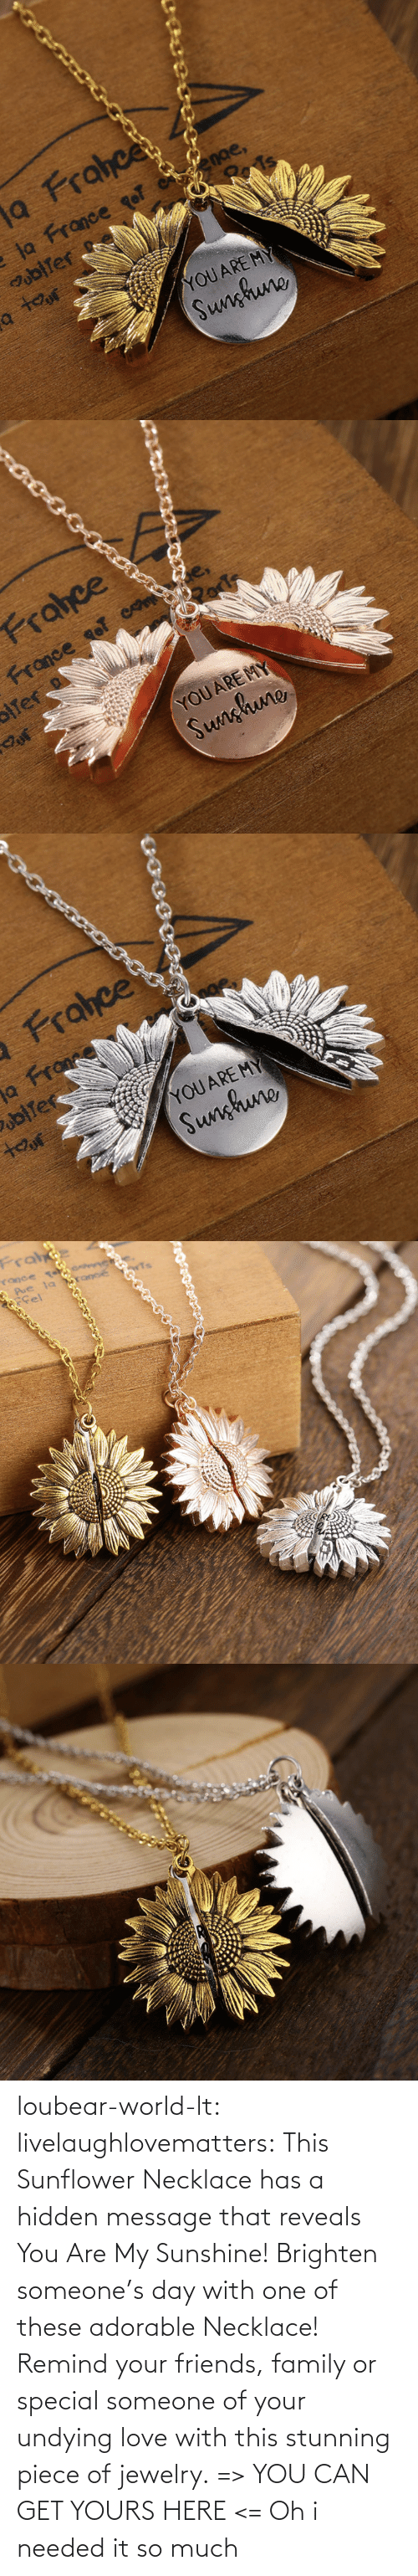 much: loubear-world-lt: livelaughlovematters:   This Sunflower Necklace has a hidden message that reveals You Are My Sunshine! Brighten someone's day with one of these adorable Necklace! Remind your friends, family or special someone of your undying love with this stunning piece of jewelry. => YOU CAN GET YOURS HERE <=    Oh i needed it so much